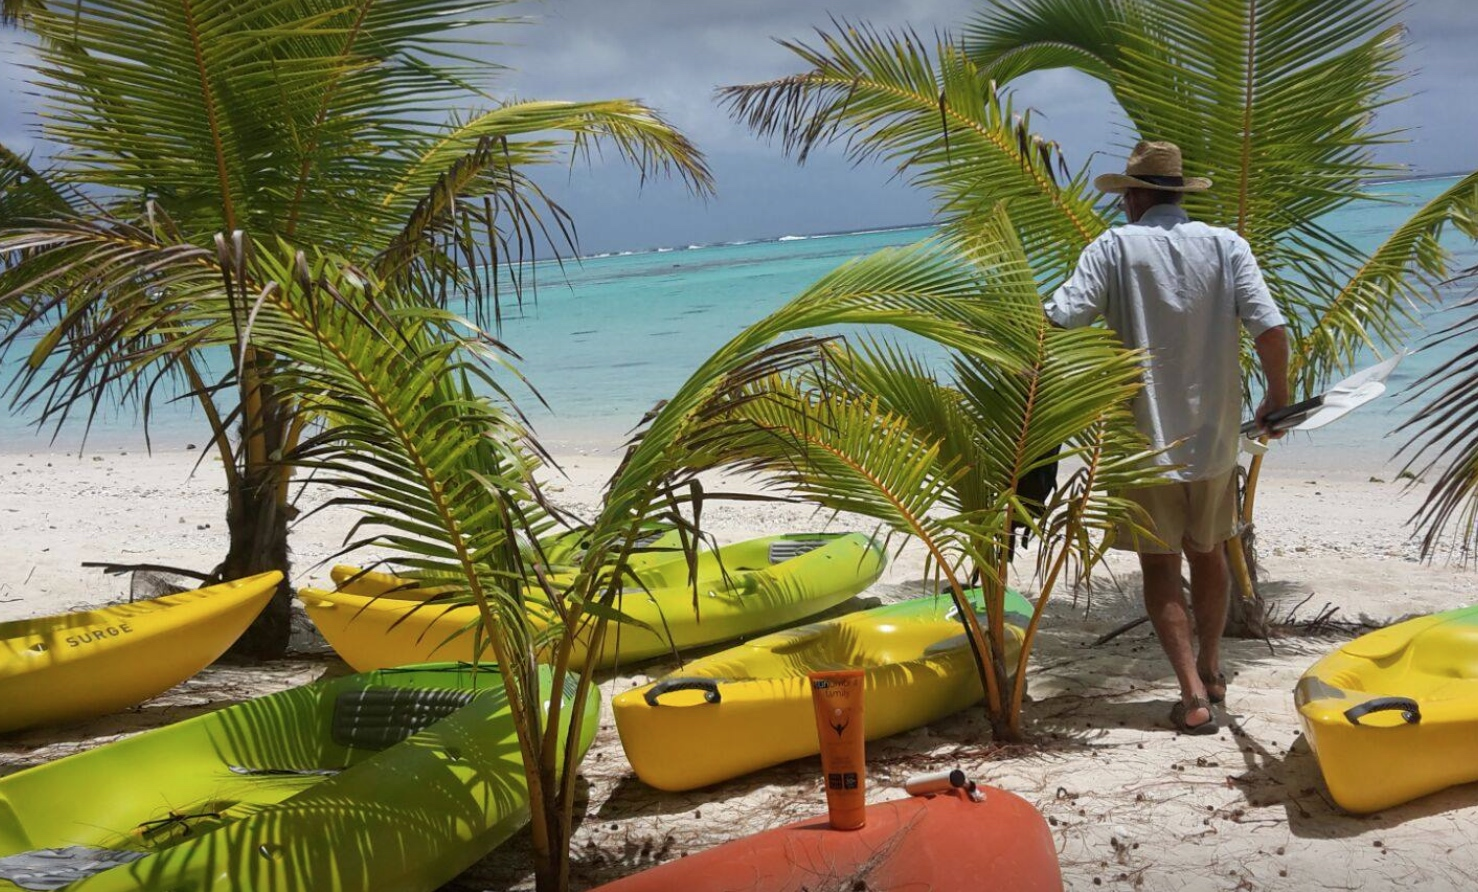 Biodegradable sunscreen for reef holidays